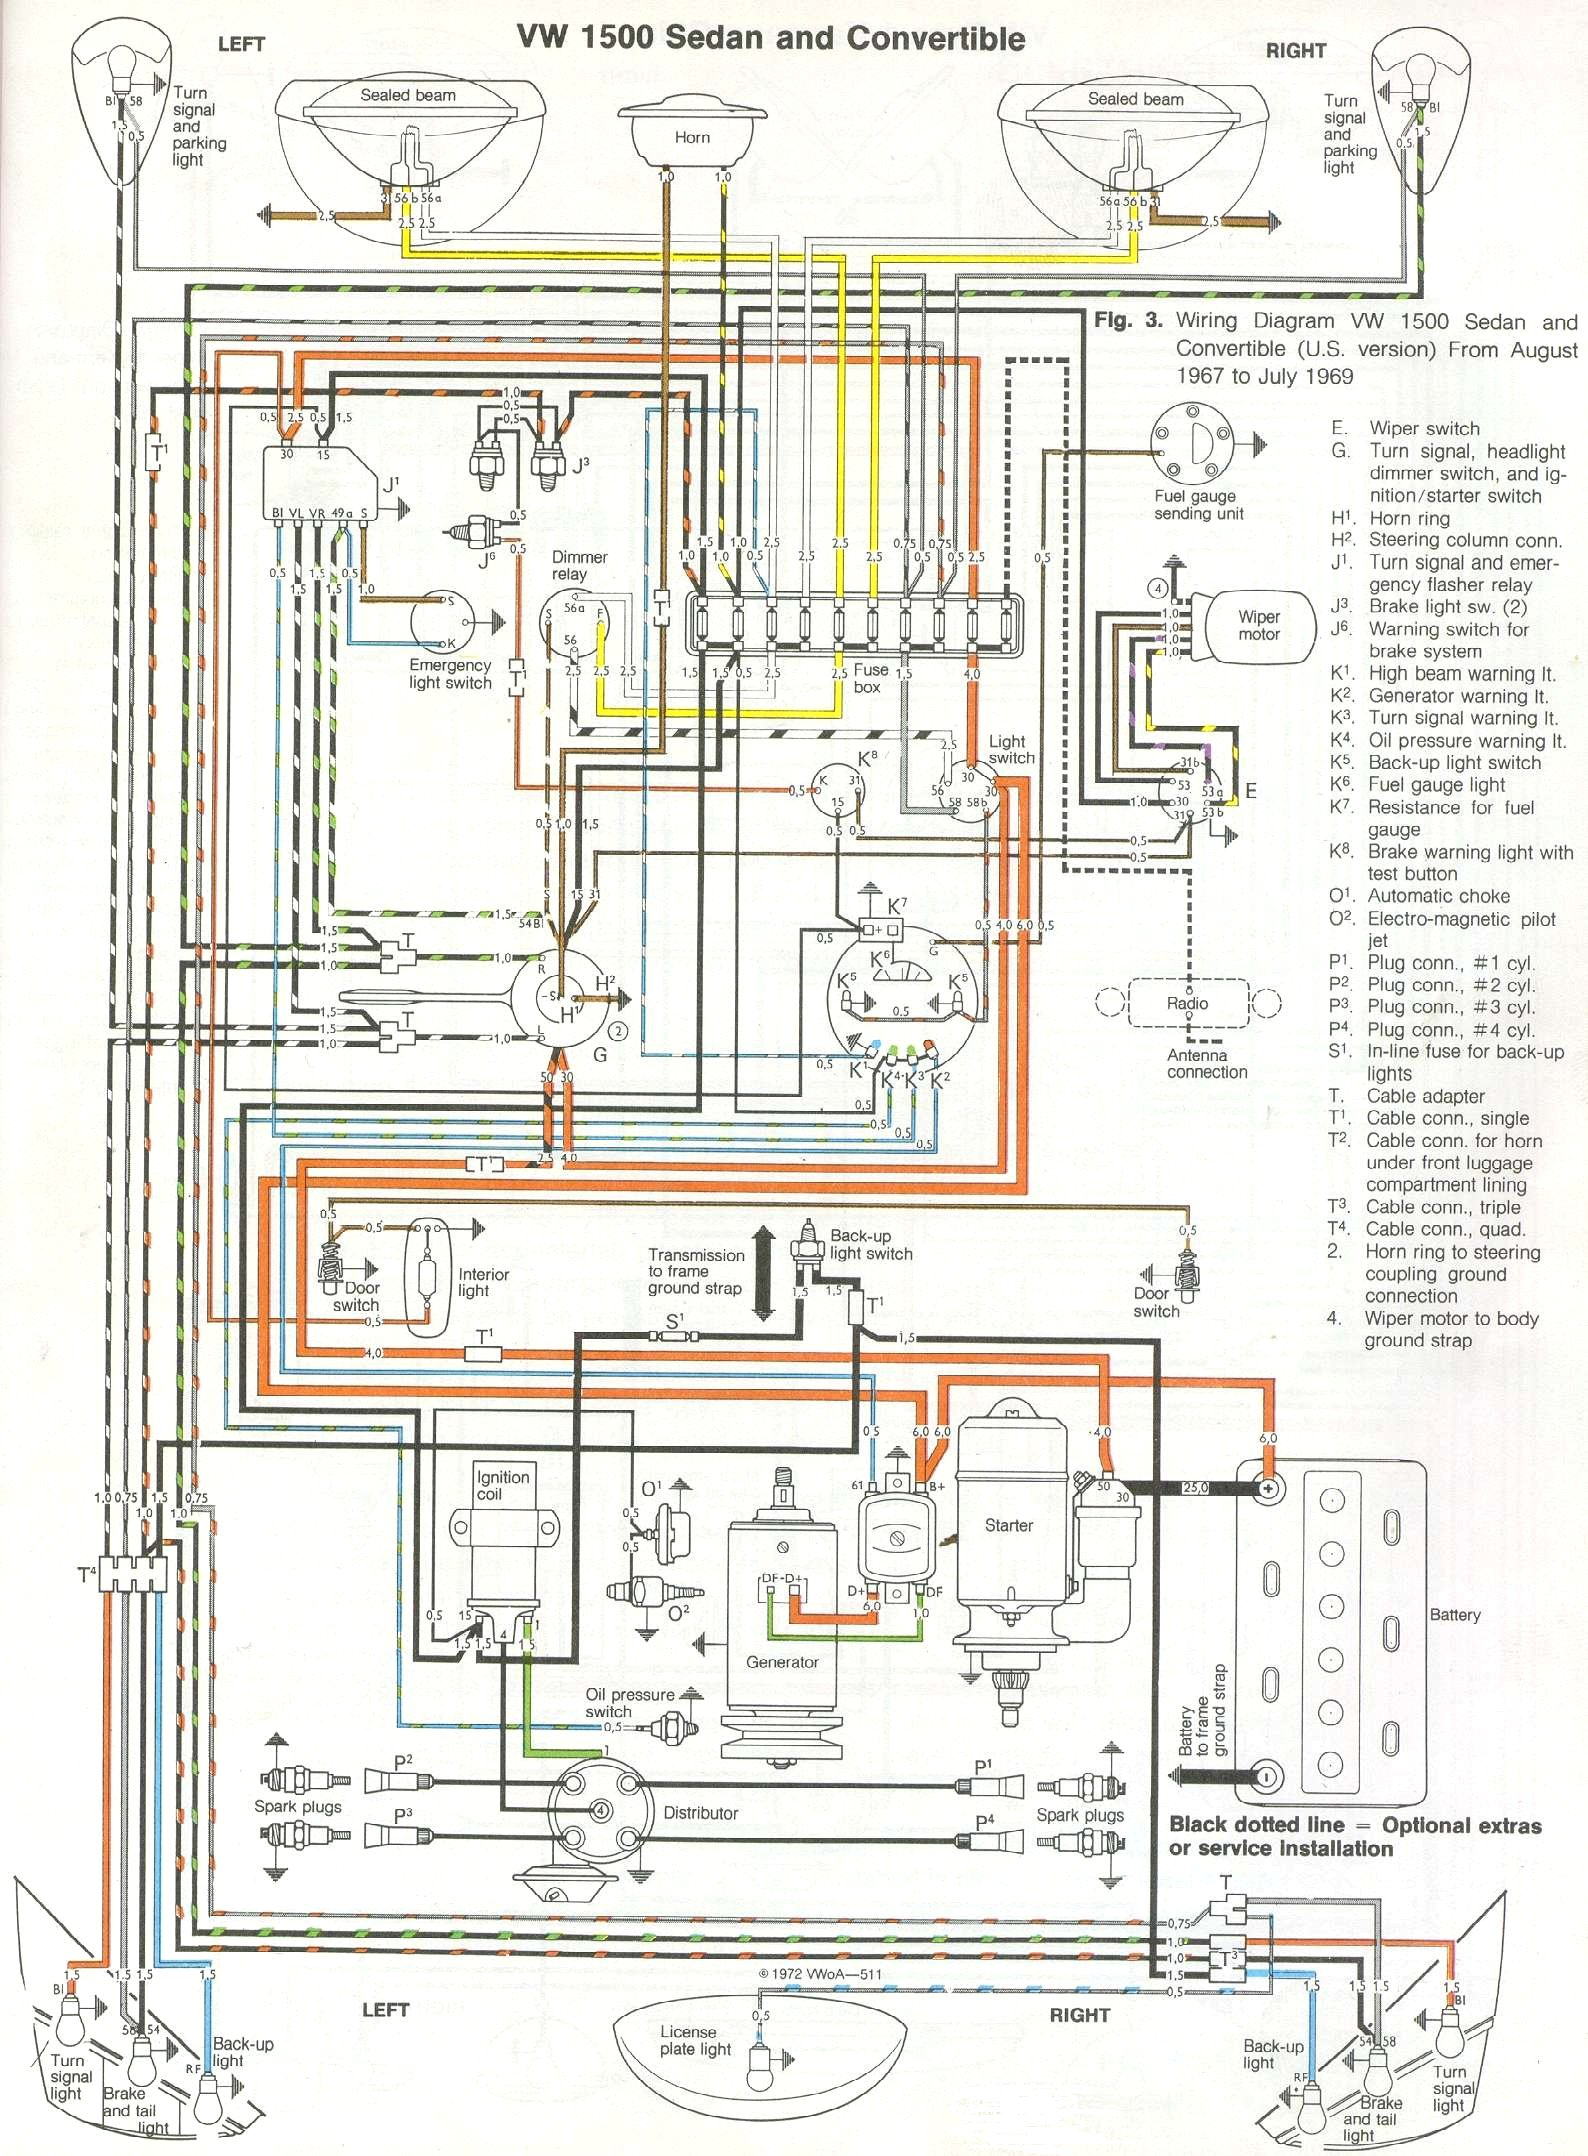 bug_6869 thesamba com type 1 wiring diagrams find wiring diagram for 87 ford f 150 at gsmportal.co